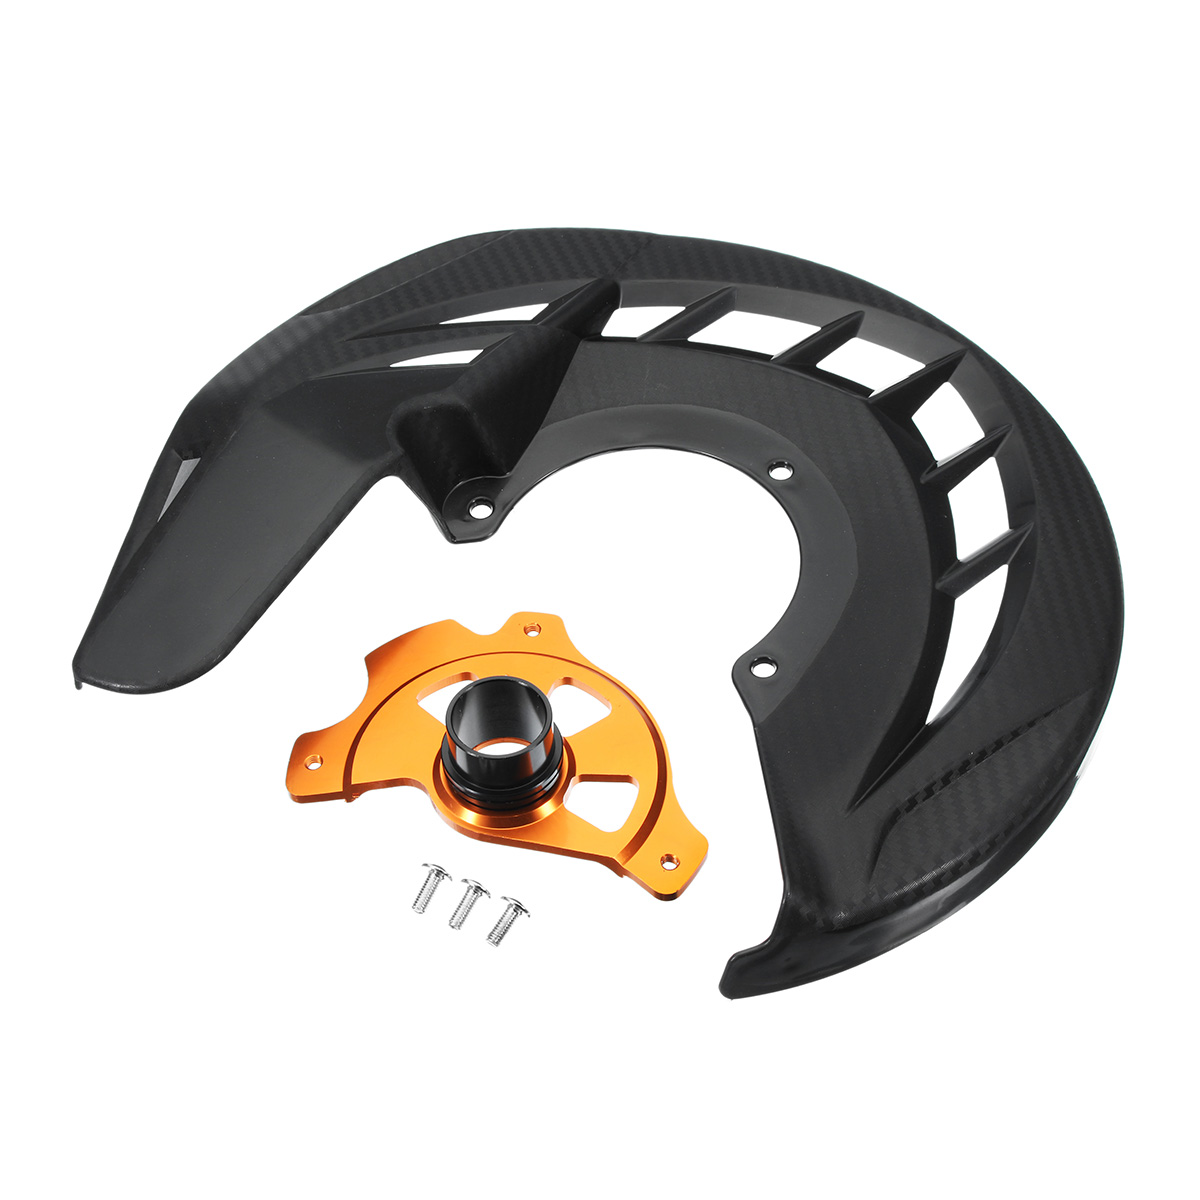 Motorcycle Front Brake Disc Rotor Guard Brake Cover Brake Protector For KTM 125-530 SX/SXF/XC/XCF 03-14 125-530 EXC/EXCF 03-15 cnc motorcycle billet rear brake disc guard for ktm 125 530 exc exc f xc w xcf w 04 15 for husaberg te 125 250 300 2011 2014 d25